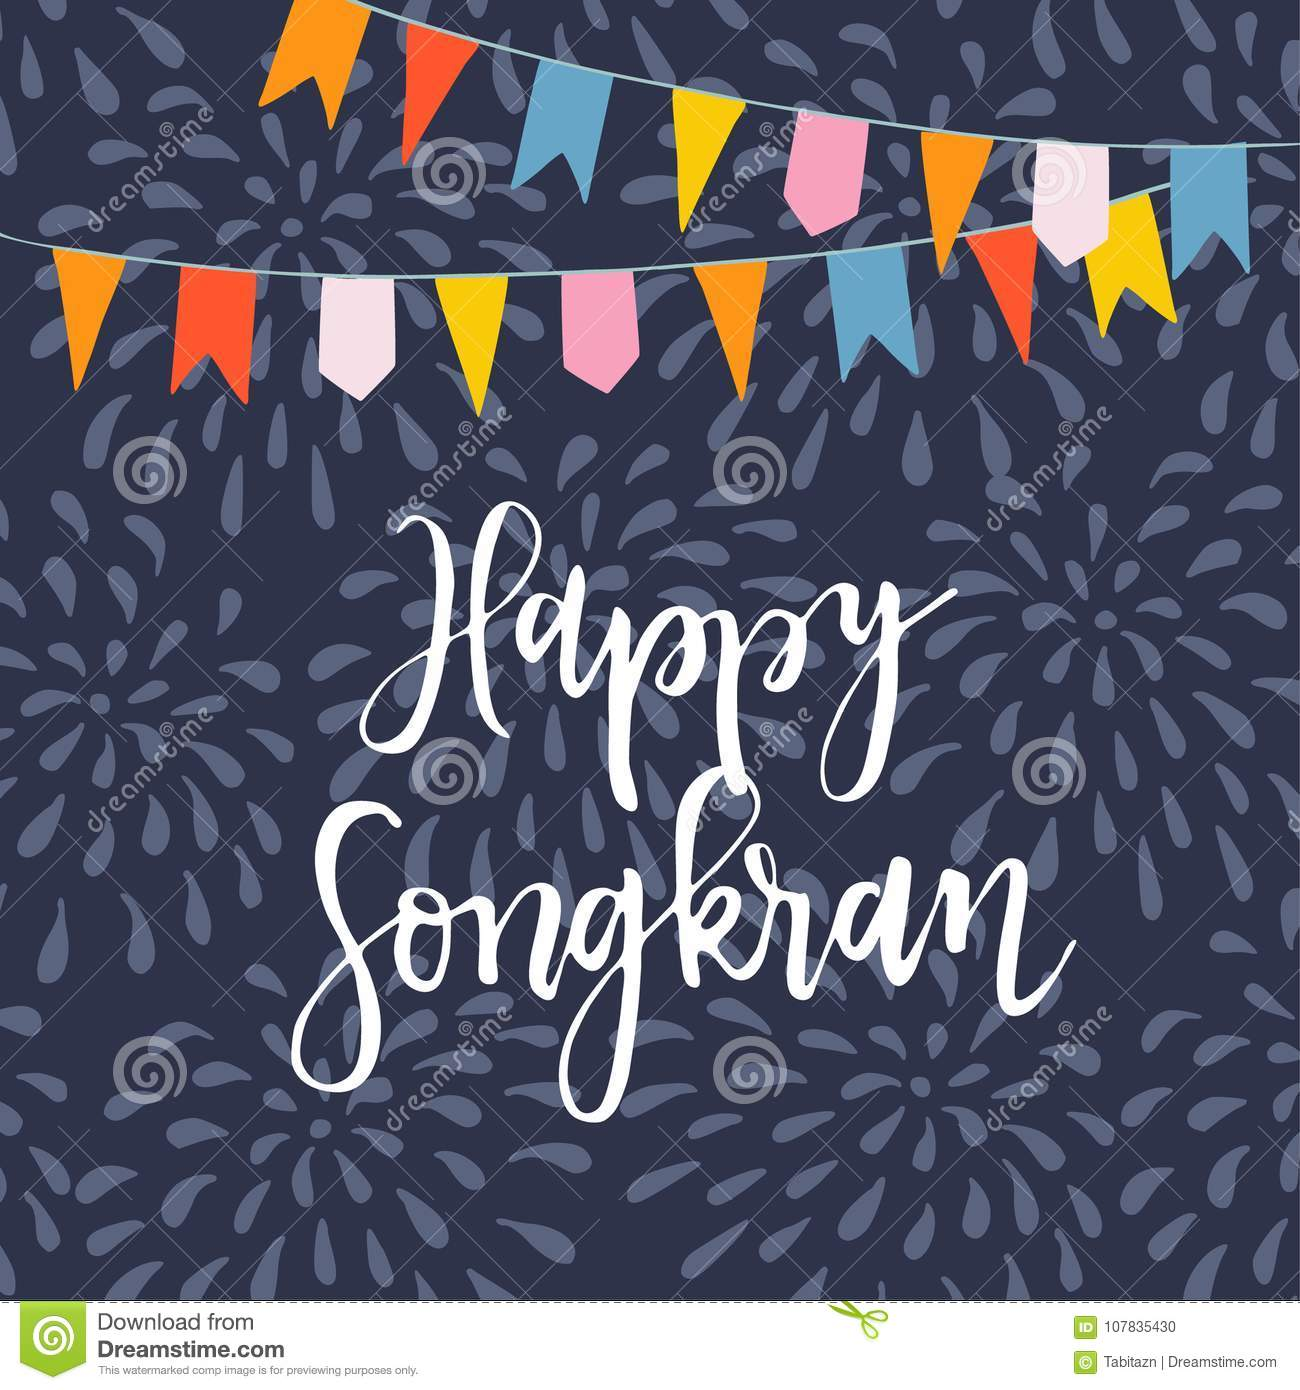 Happy Songkran Greeting Card Invitation With Colorful Party Flags